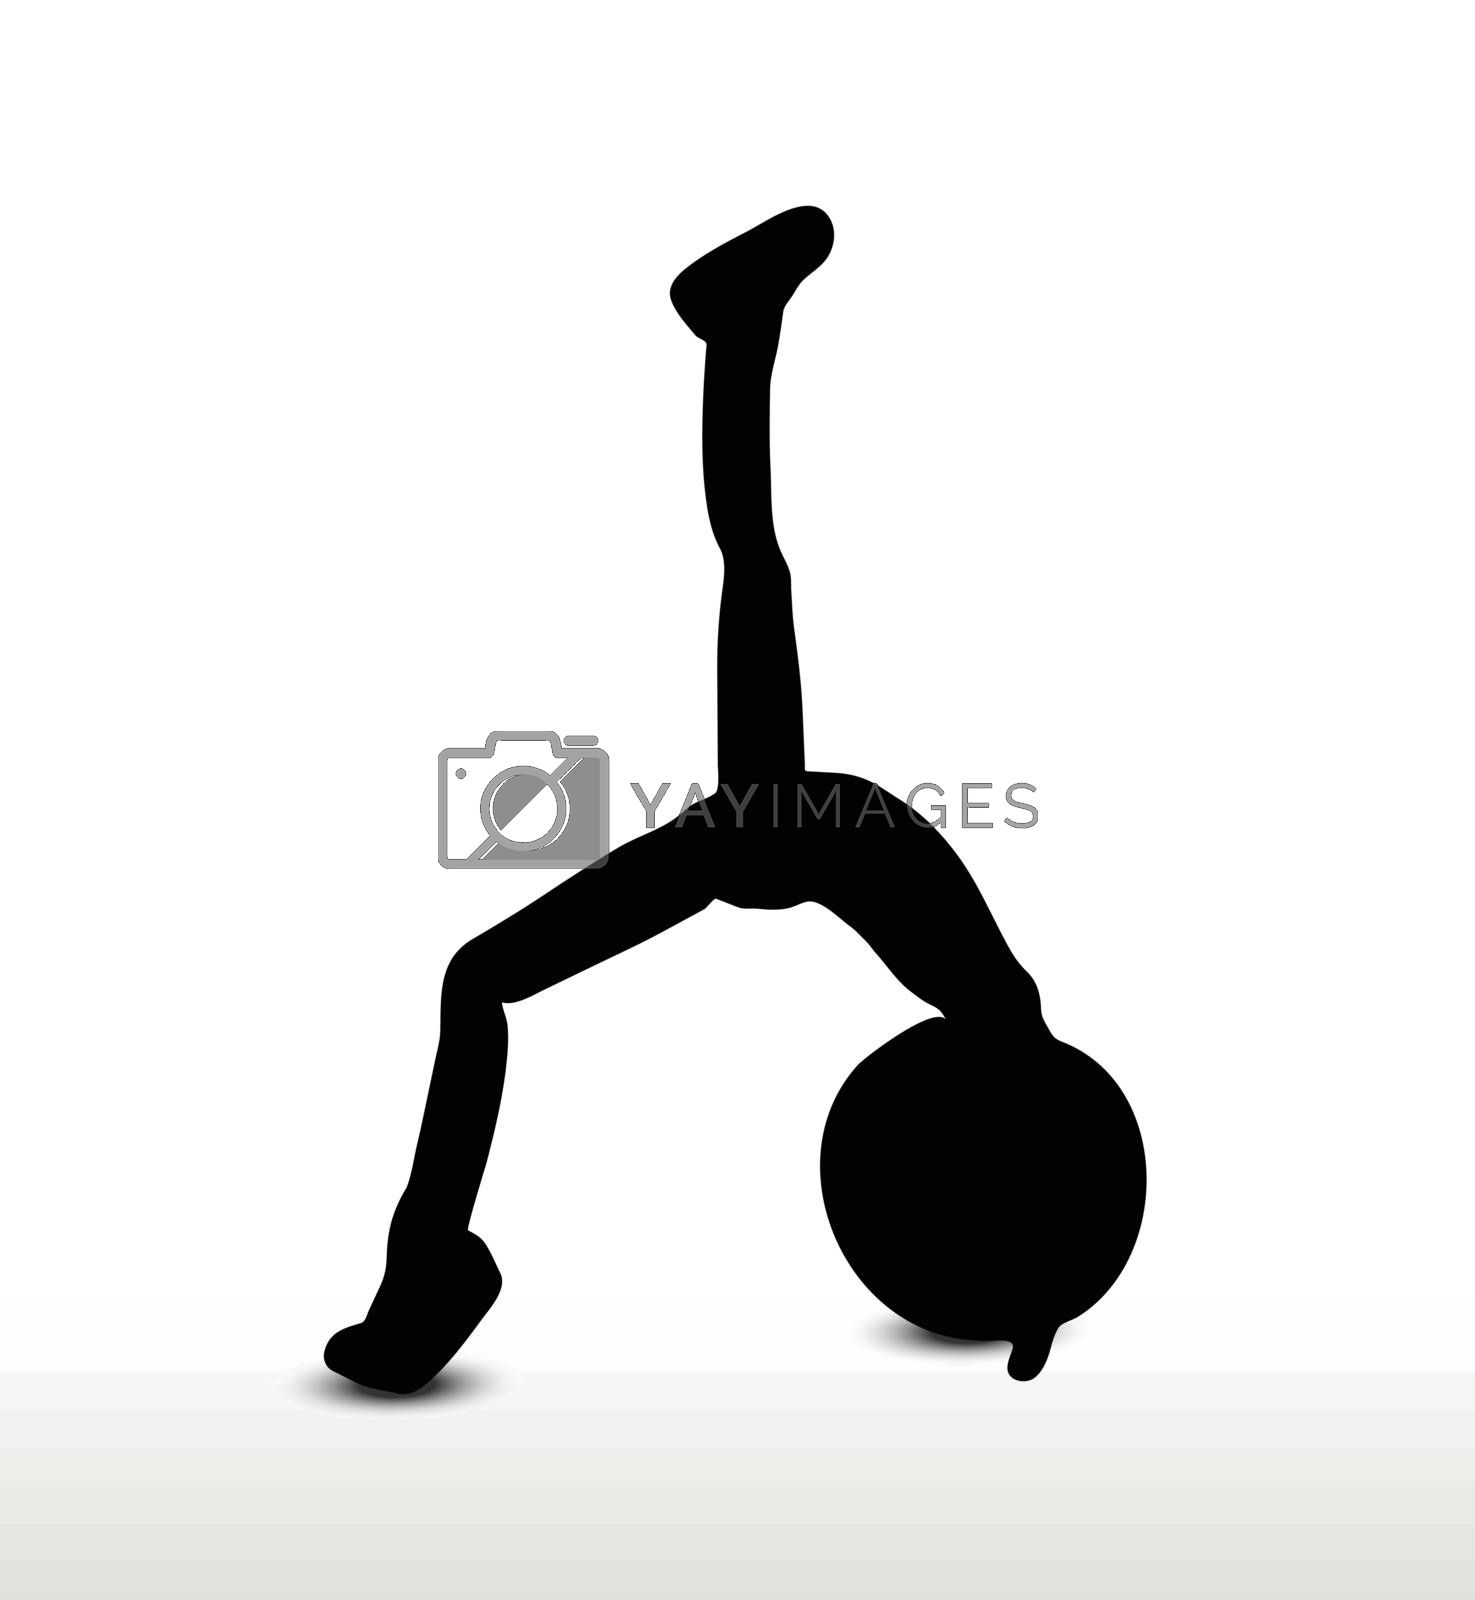 3d man silhouette, isolated on white background, yoga